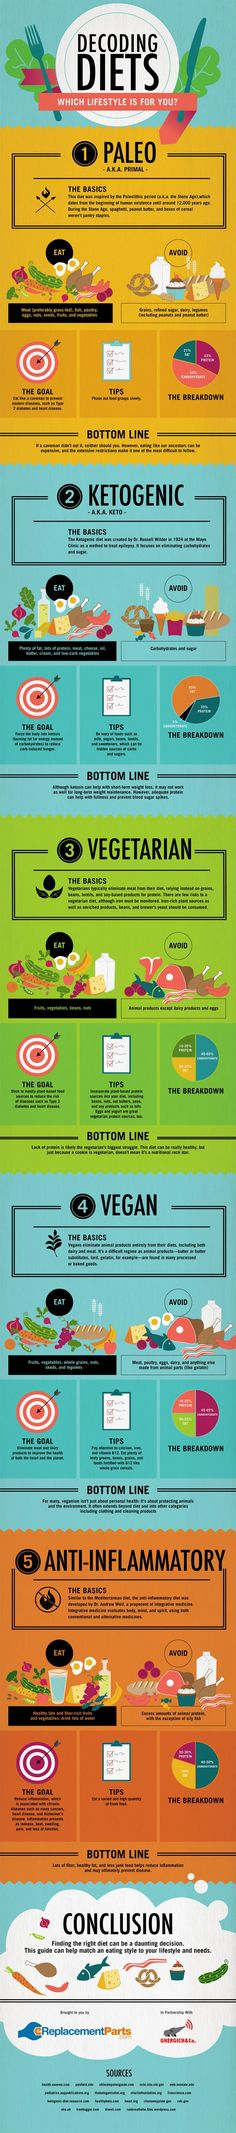 What type of diet works best for your body type and metabolism?